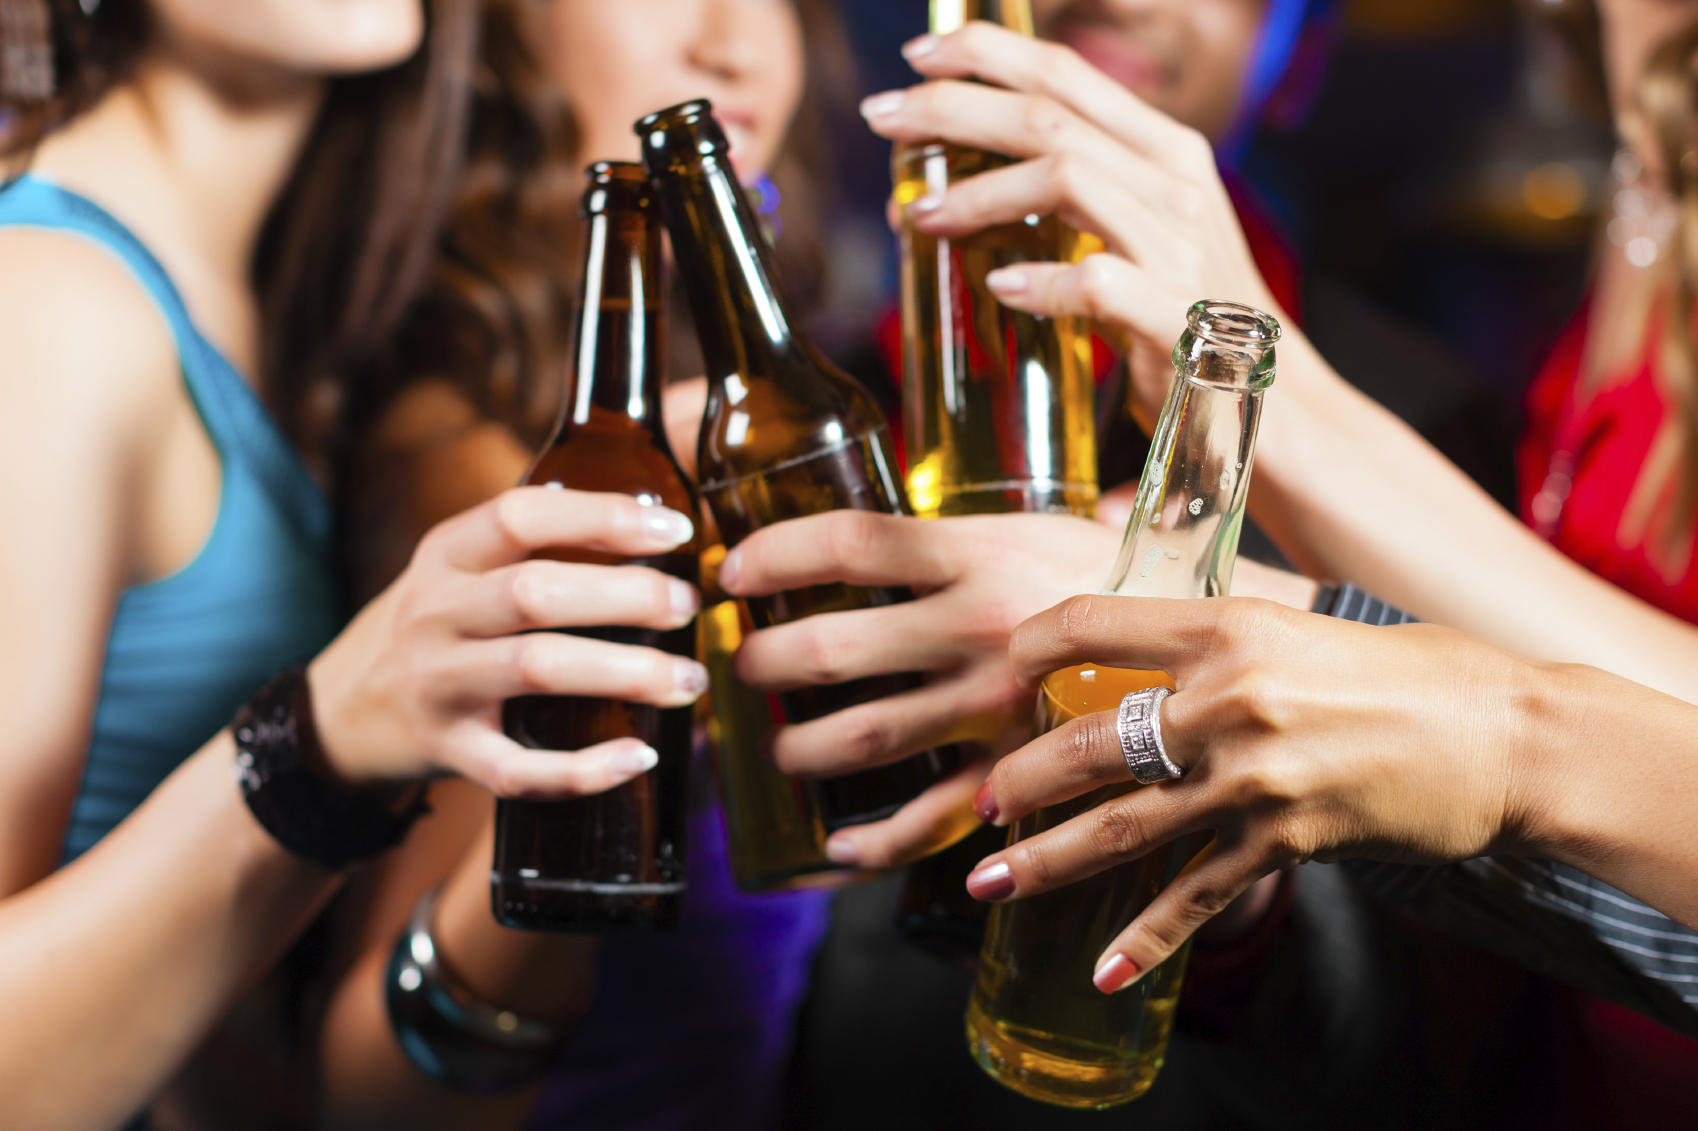 Alcohol use and abuse continue to spike, study finds